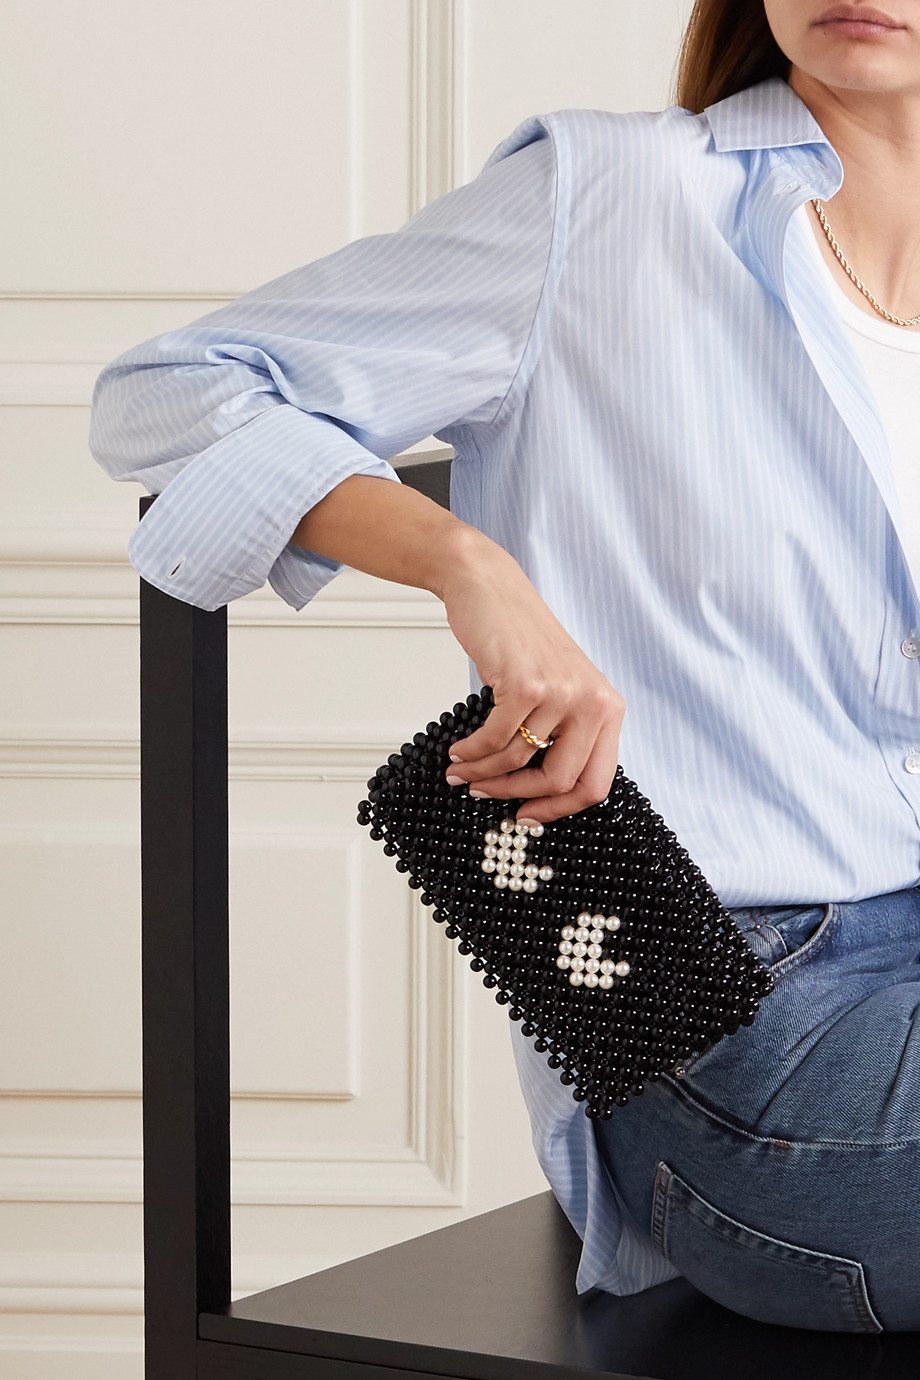 Anya Hindmarch Eyes leather-trimmed beaded clutch